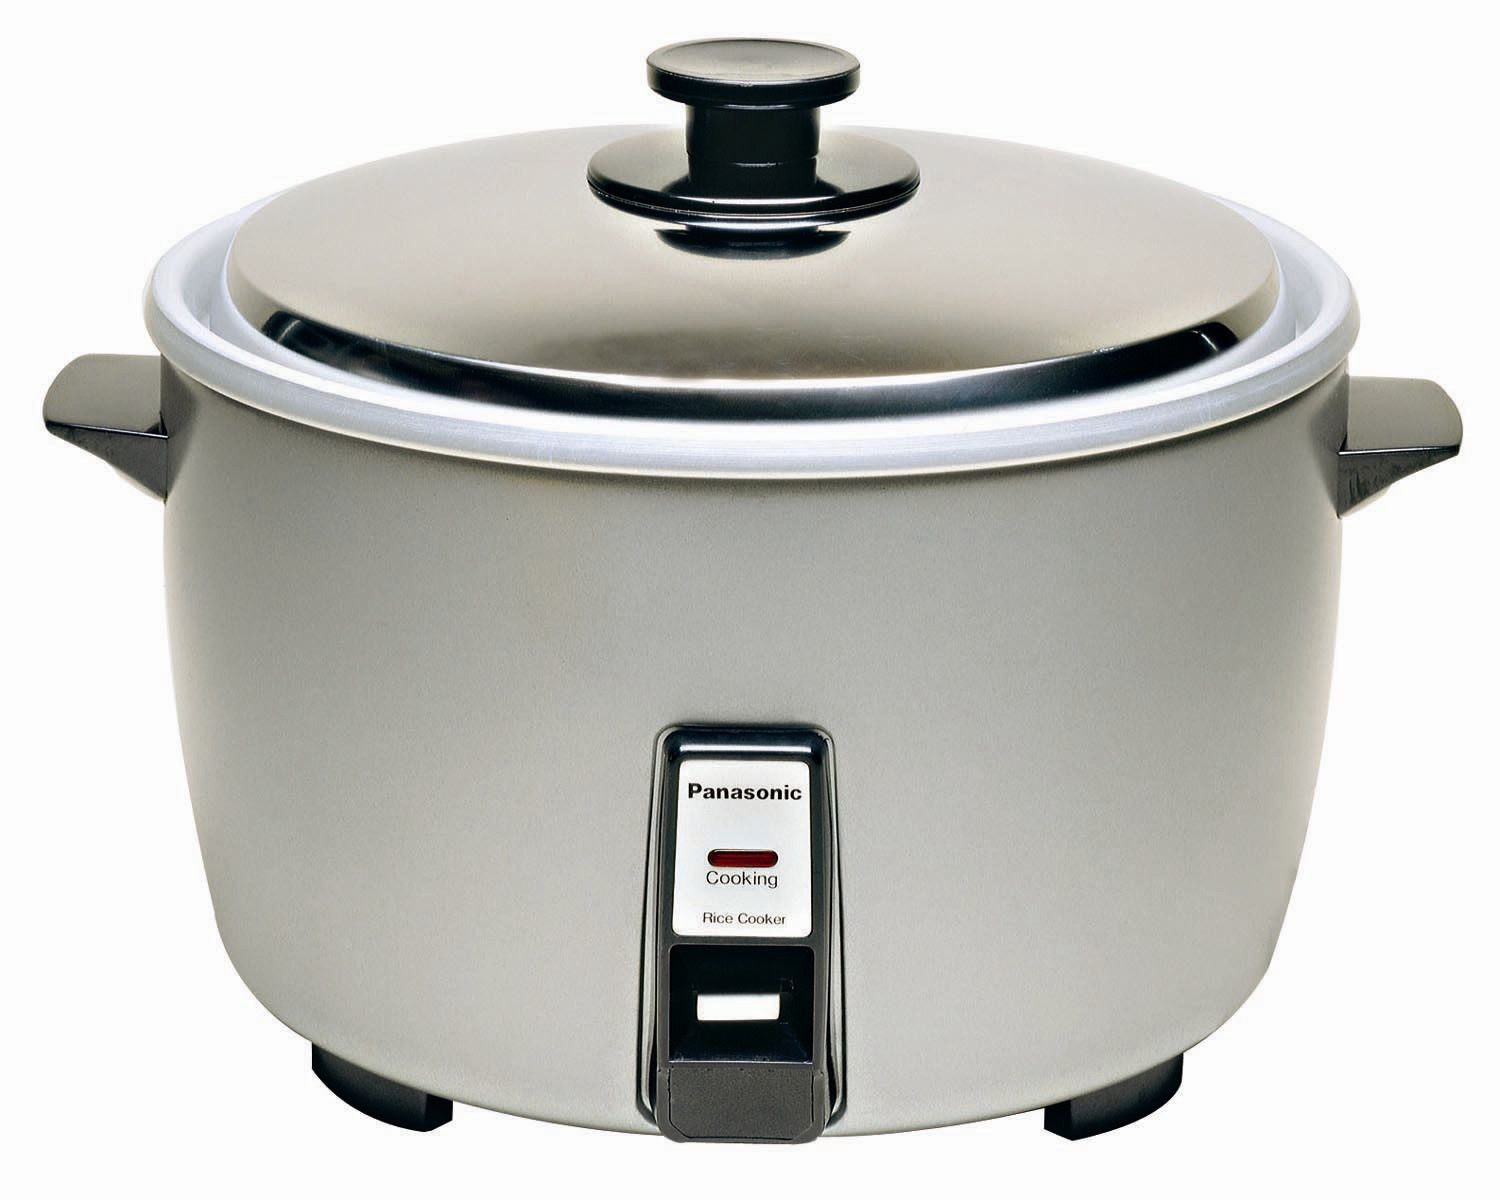 Panasonic 23 Cup Electric Rice Cooker